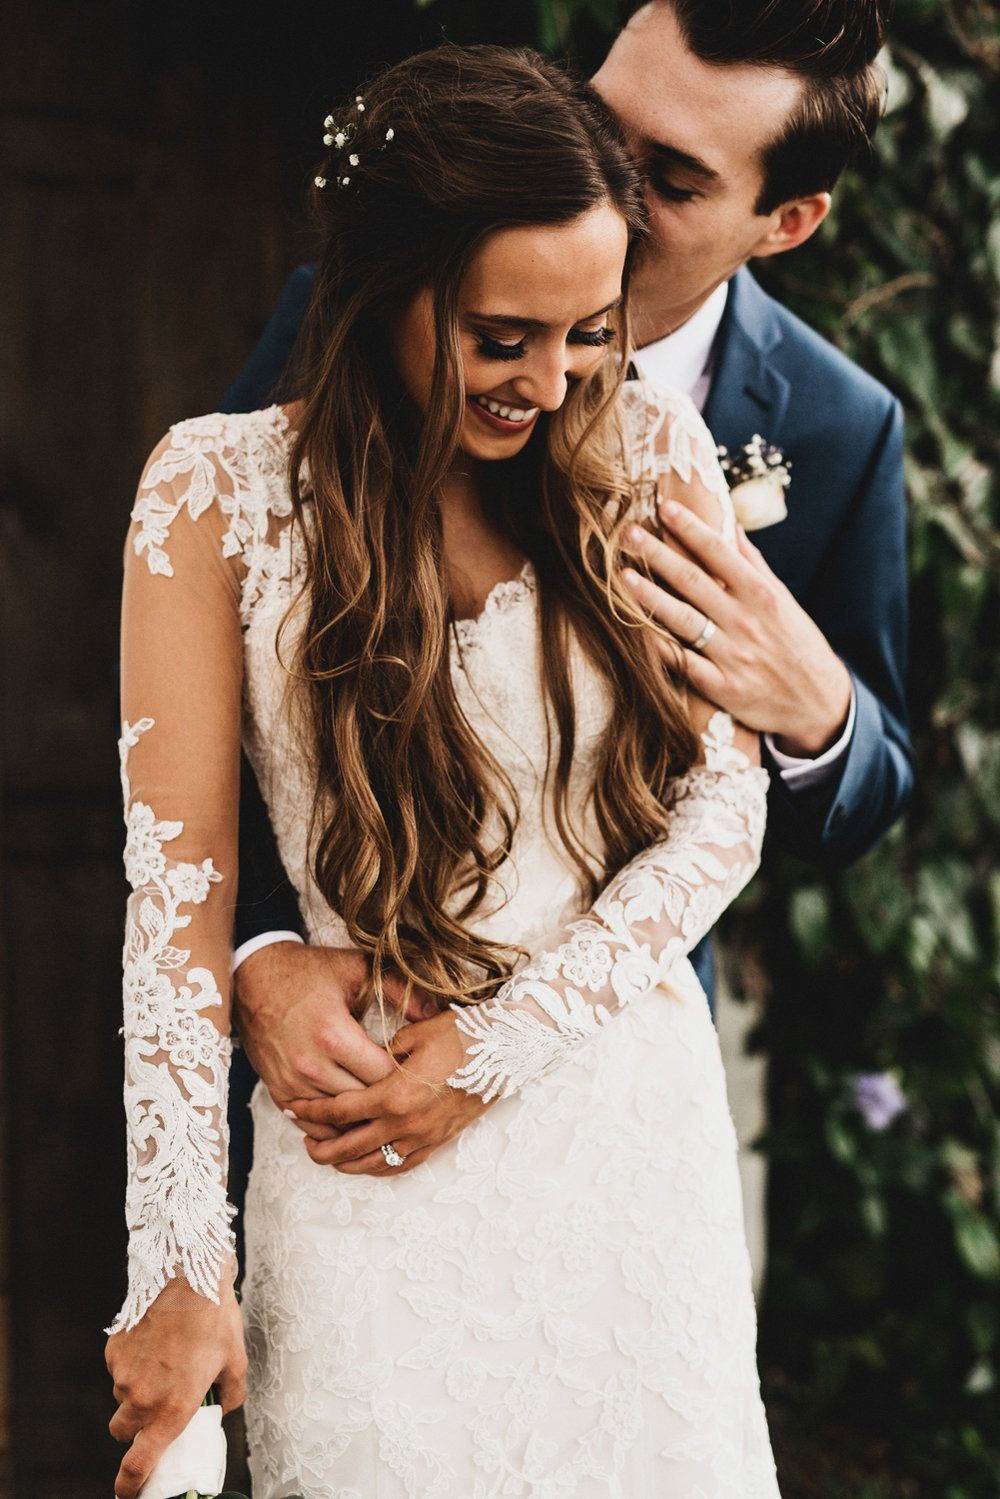 Vintage florida wedding featuring a long sleeve lace wedding dress